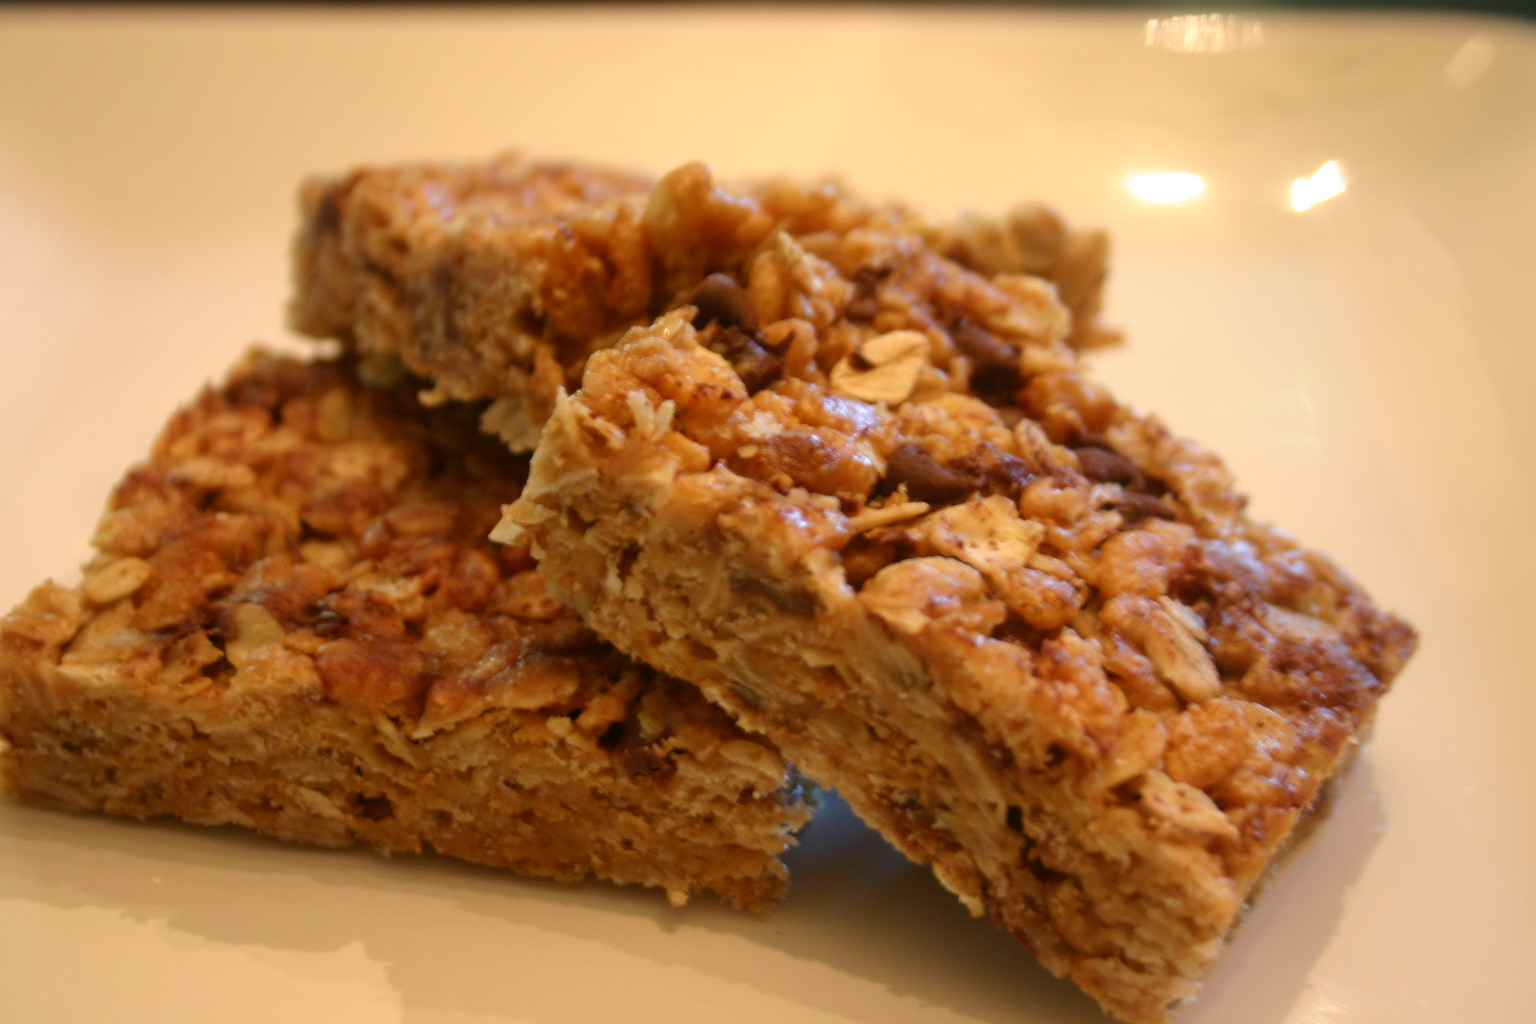 Pure Pursuit: No Bake Brown Rice and Oat Crispy Treats